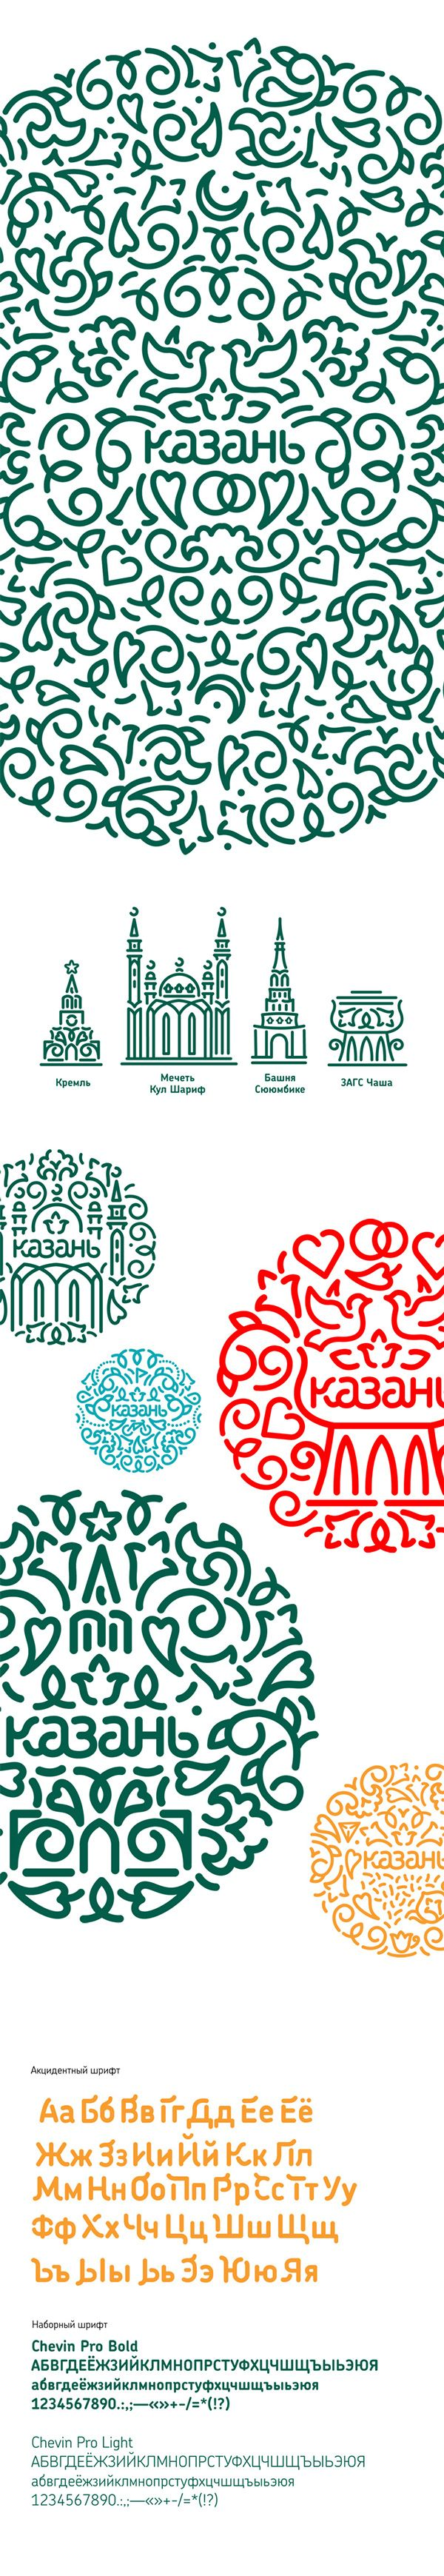 KAZAN identity on Behance